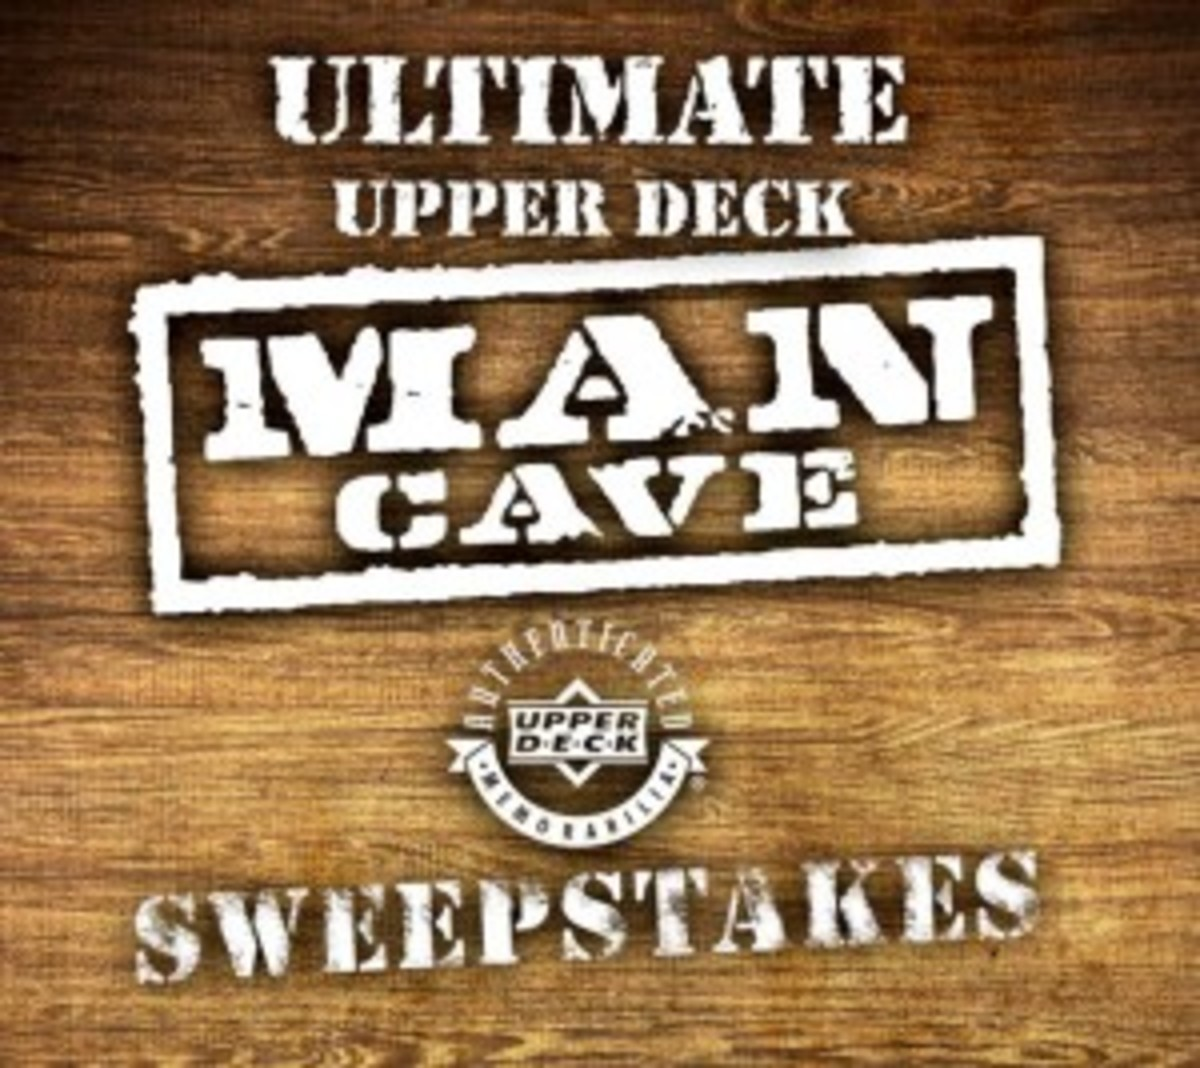 UD-Mancave-Sweepstakes